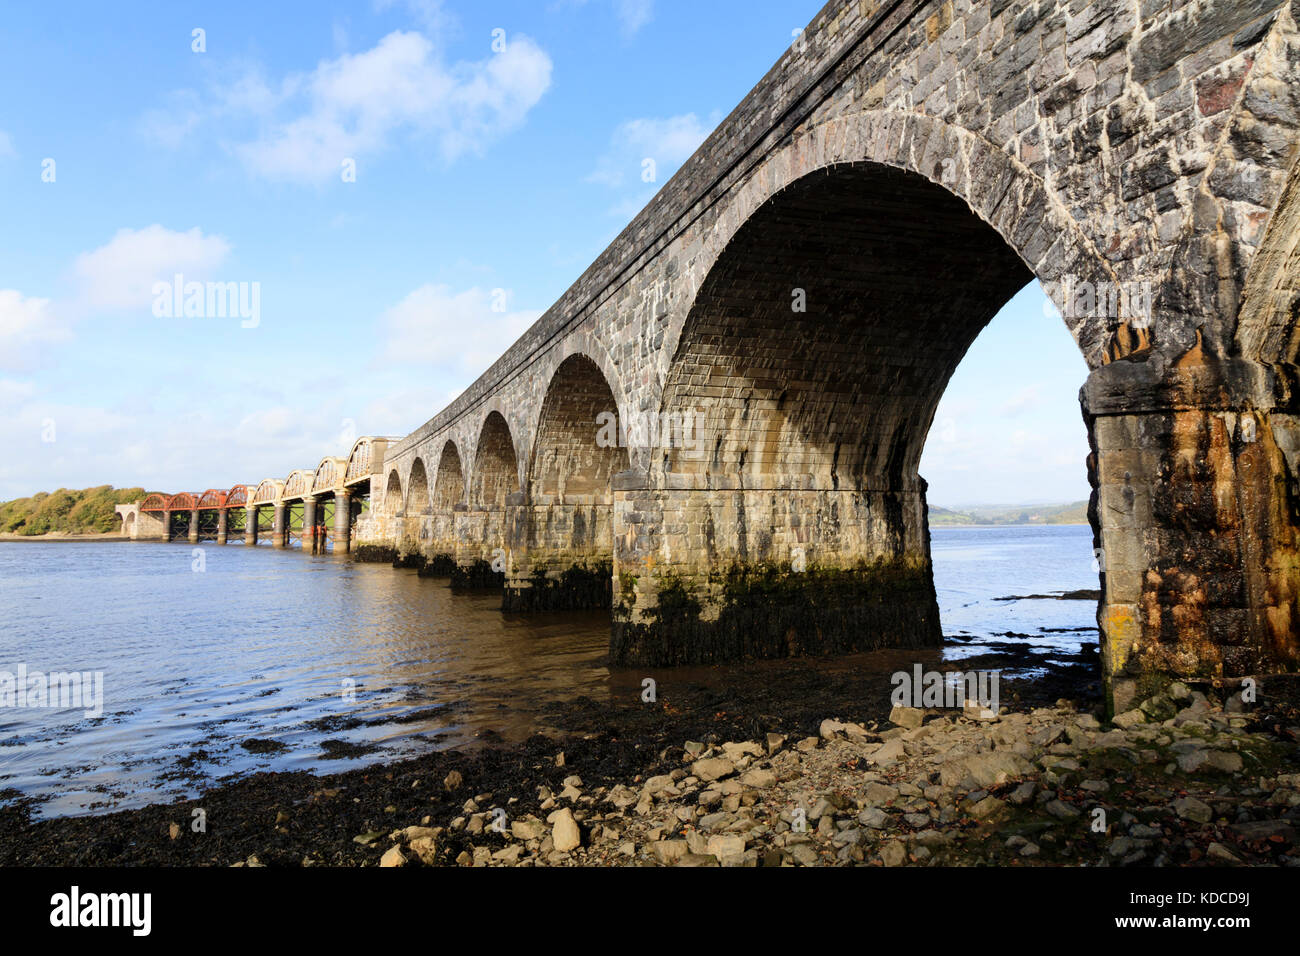 stone-and-metal-arches-of-the-rail-bridge-that-carries-the-tamar-line-KDCD9J.jpg